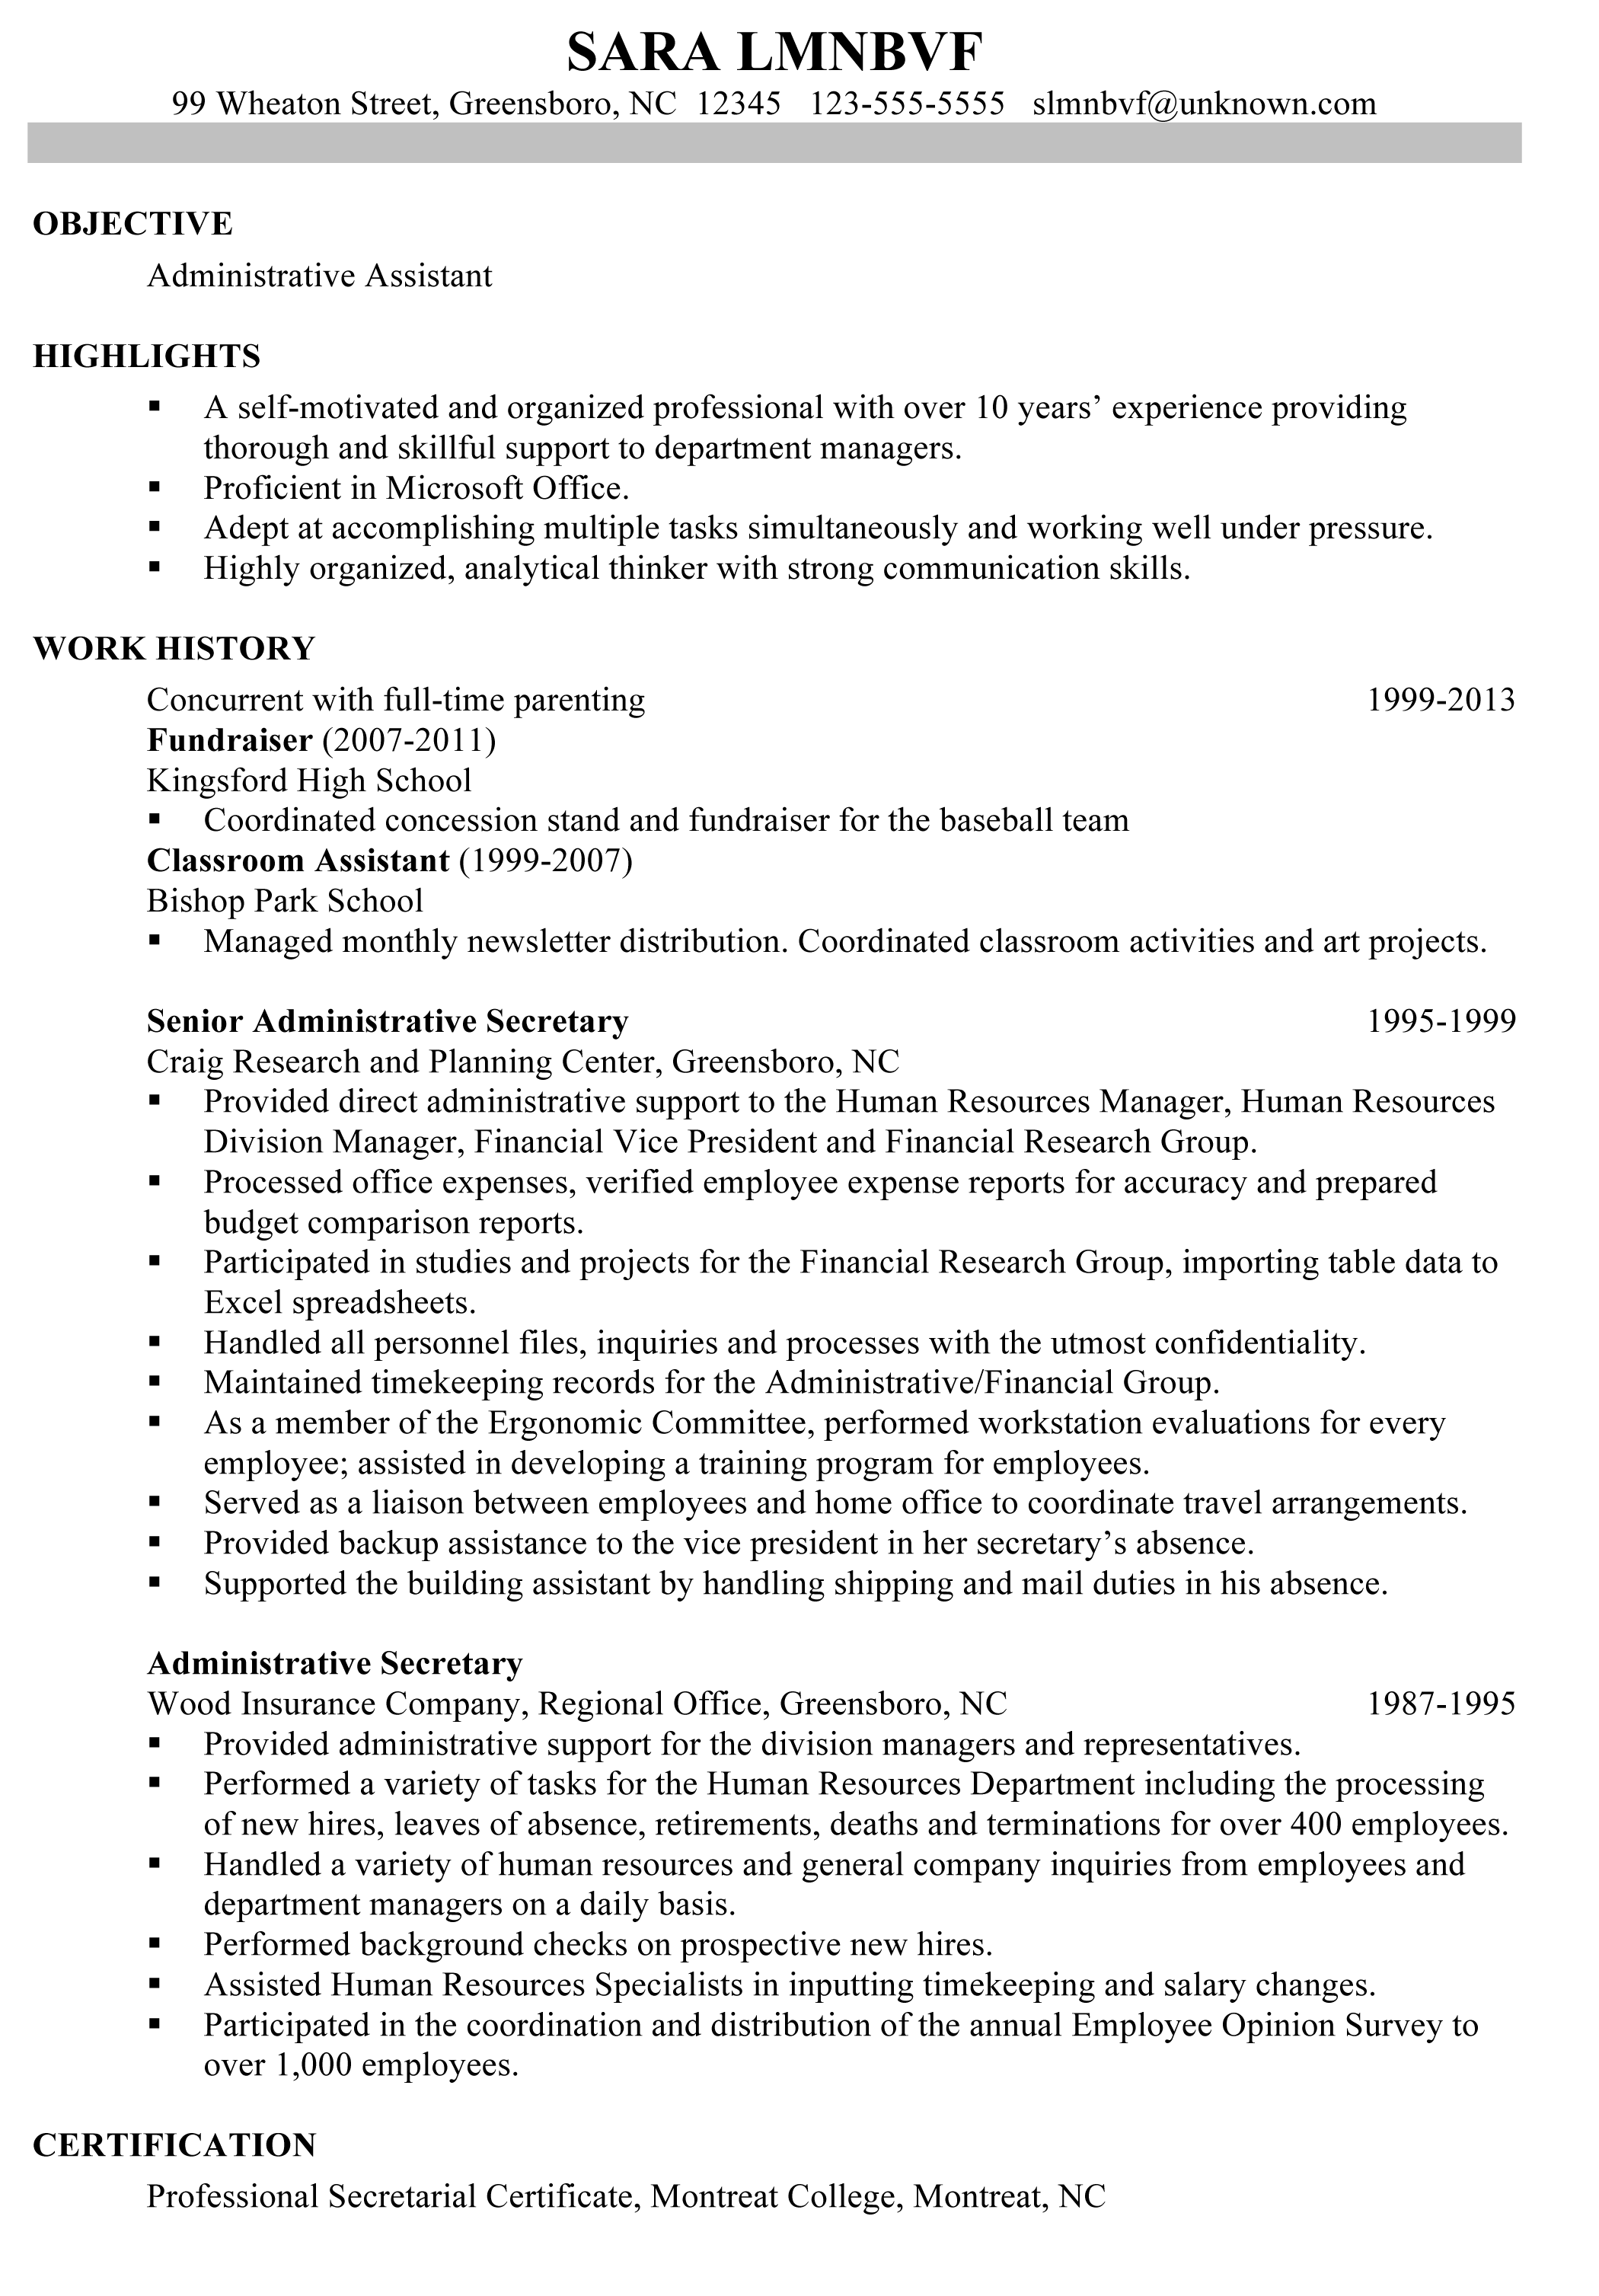 Administrative Assistant Resume Sample Great Administrative Assistant Resumes  Using Professional Resume